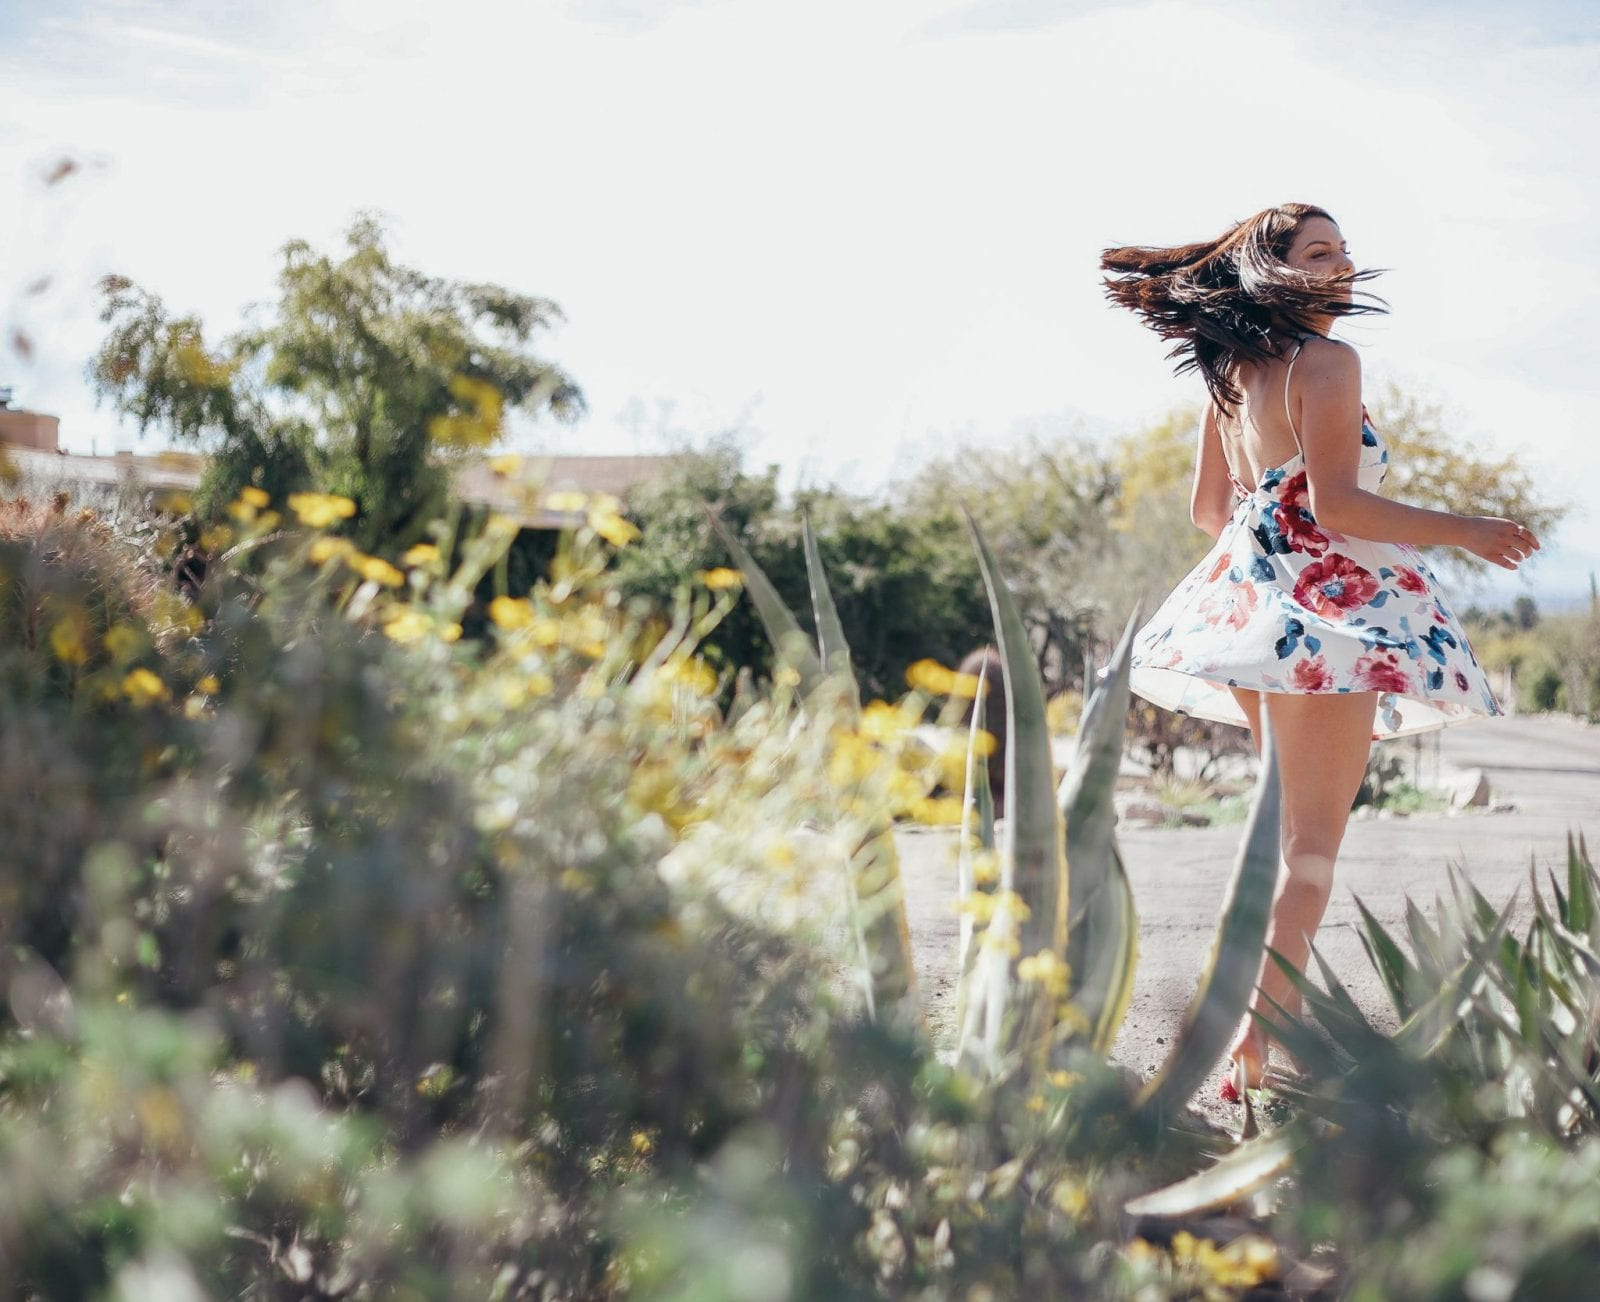 I am twirling in Sonoran desert landscape, in a Pink Lily floral dress. My hair is flipping to the right as I twirl.